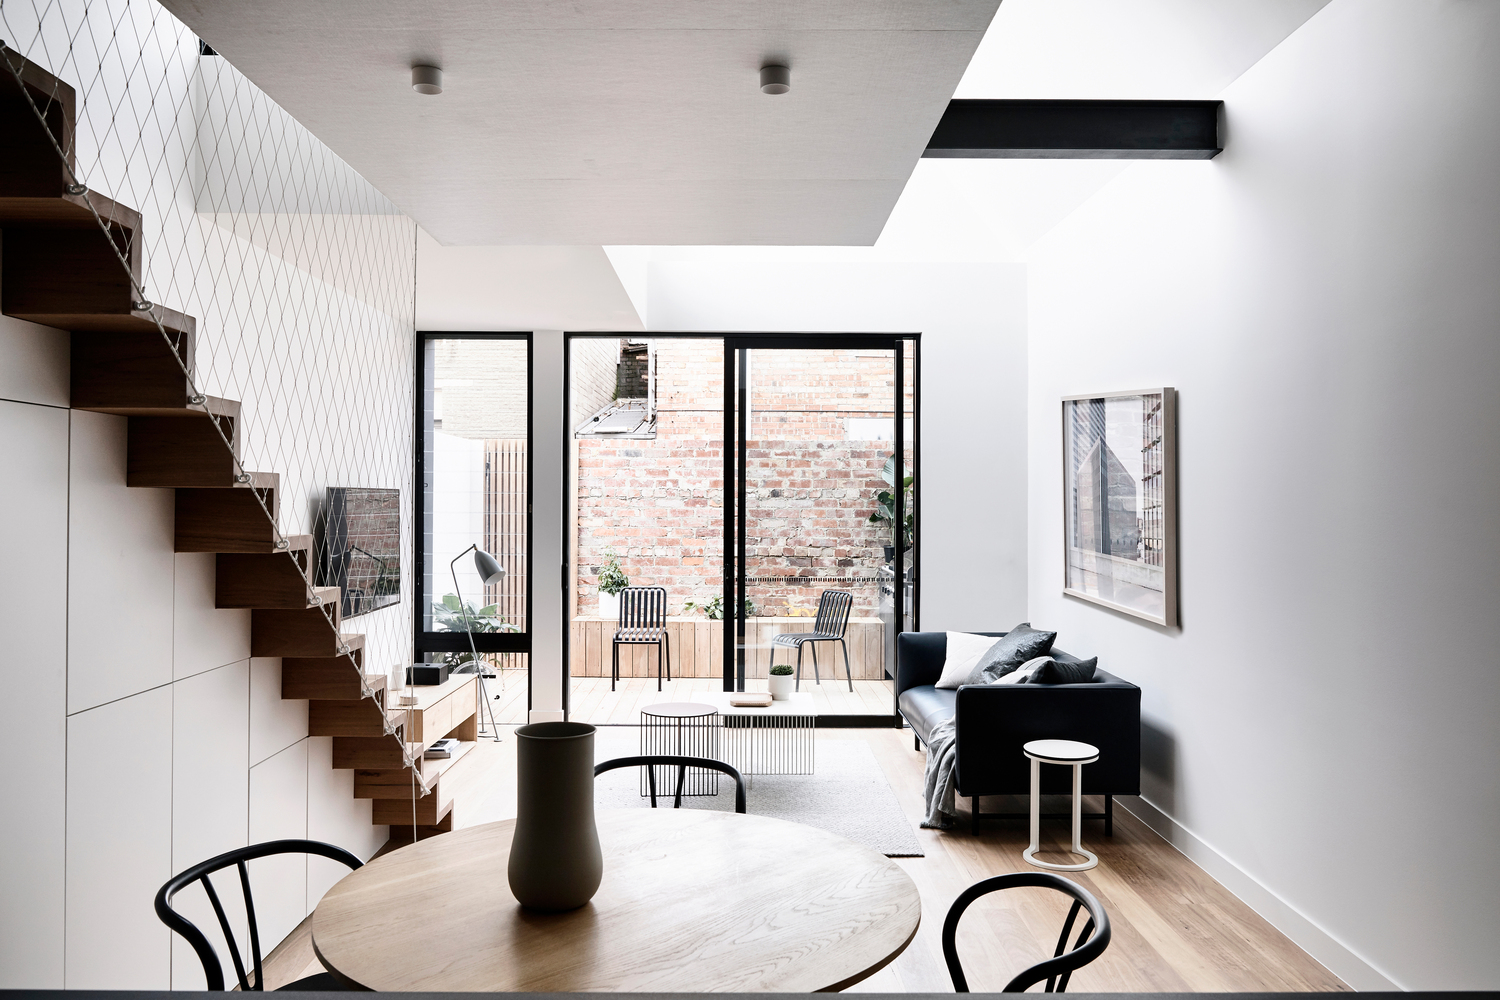 awesome industrial style home design | A Double Height Space Brings Light Into This Previously ...